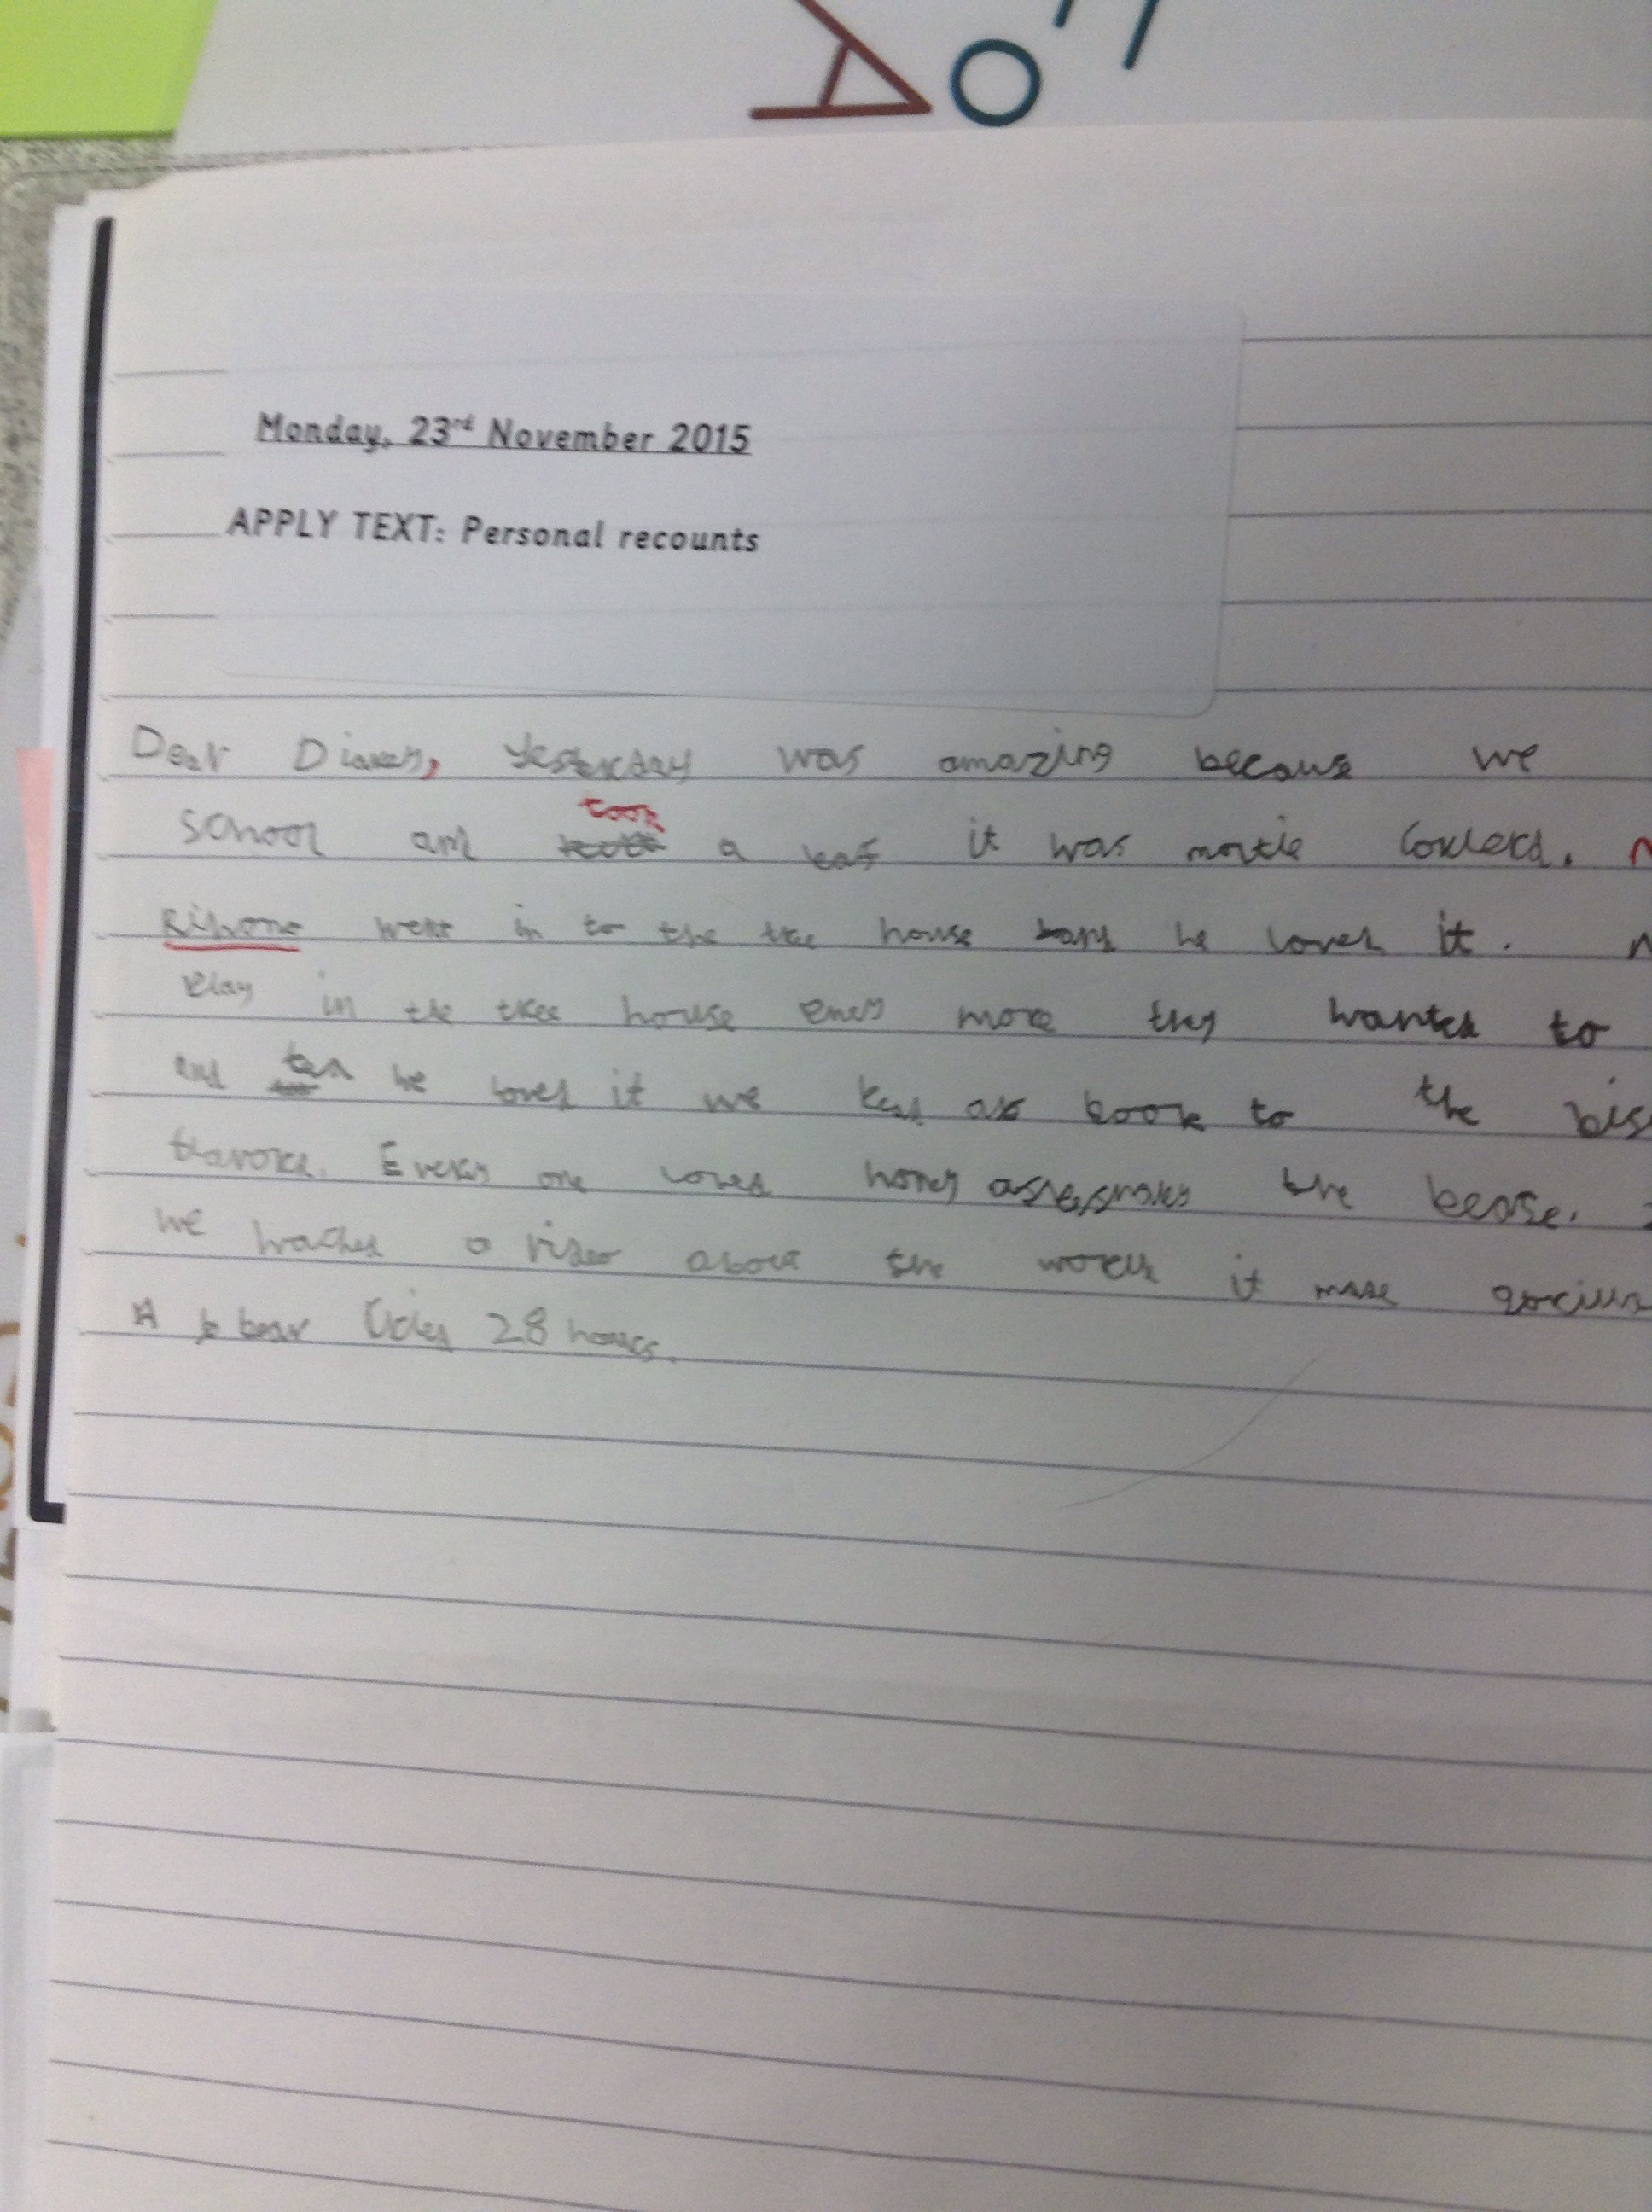 Self recount in year 3u – Ashmead Primary School